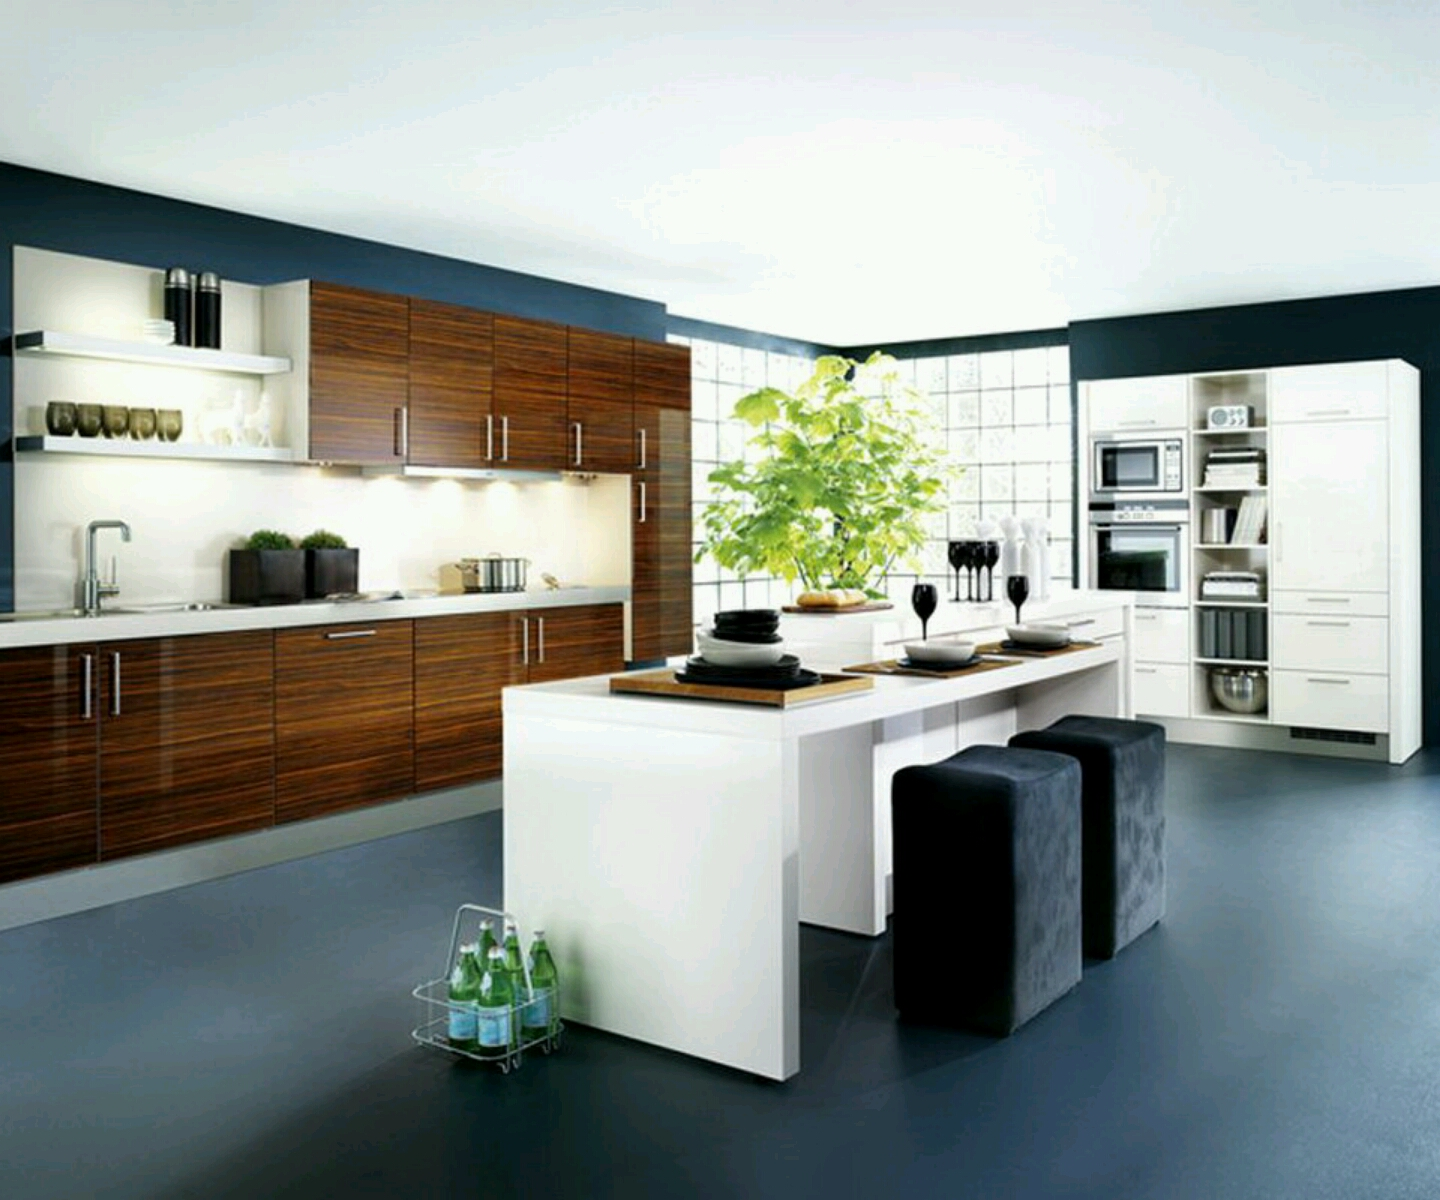 New home designs latest kitchen cabinets designs modern for New style kitchen